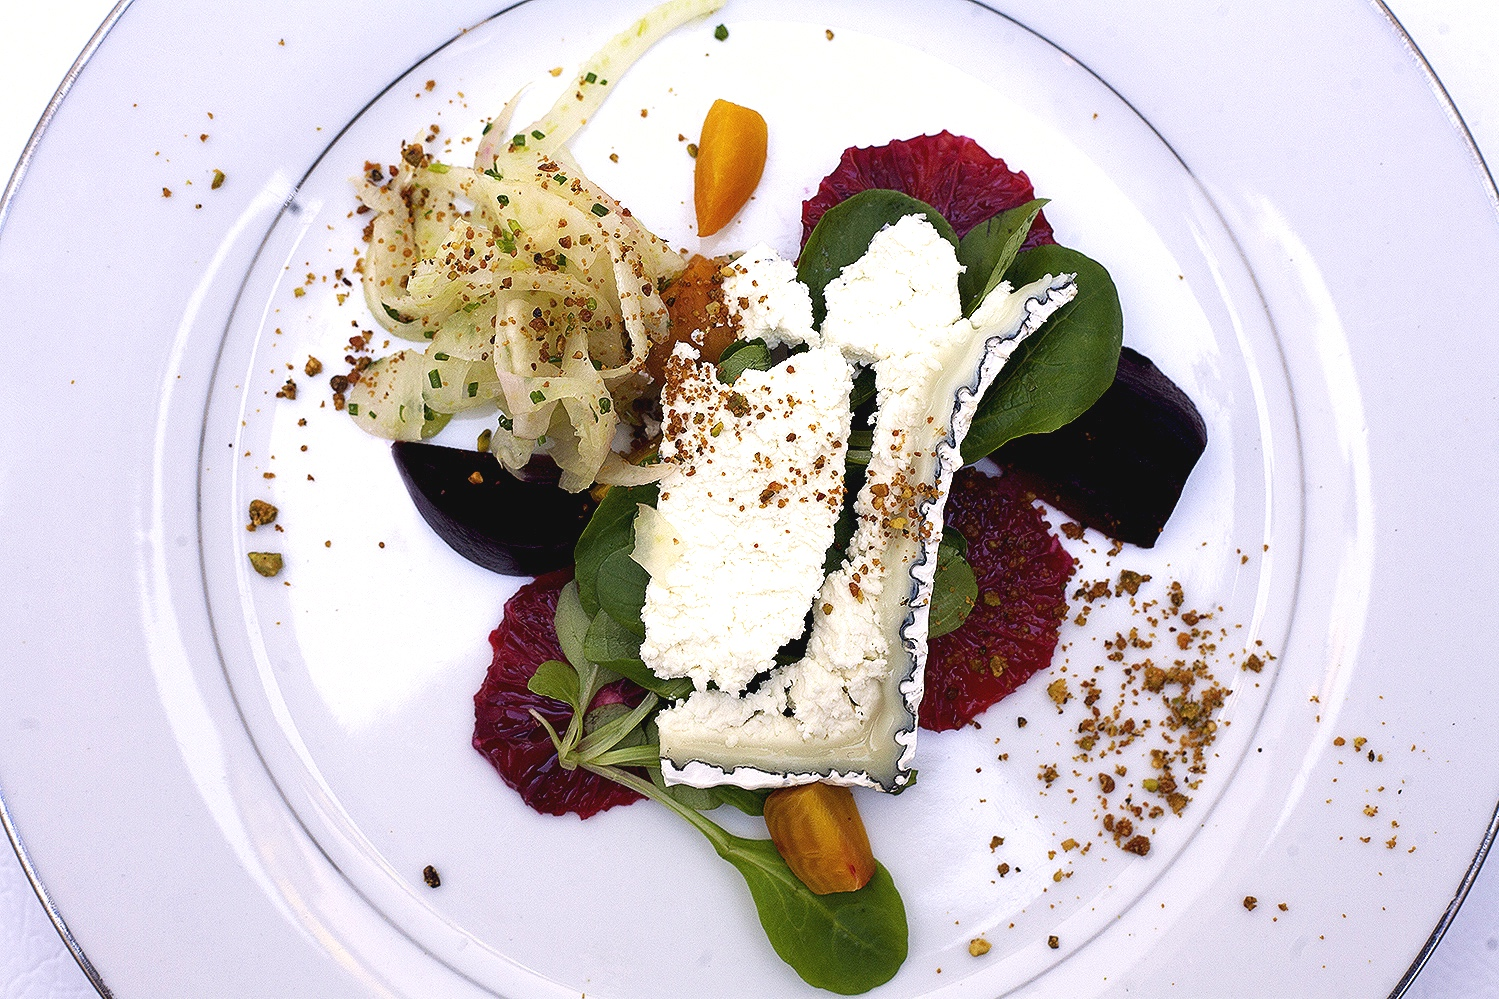 Autumn salad with chèvre, blood orange, fennel and red and gold beets